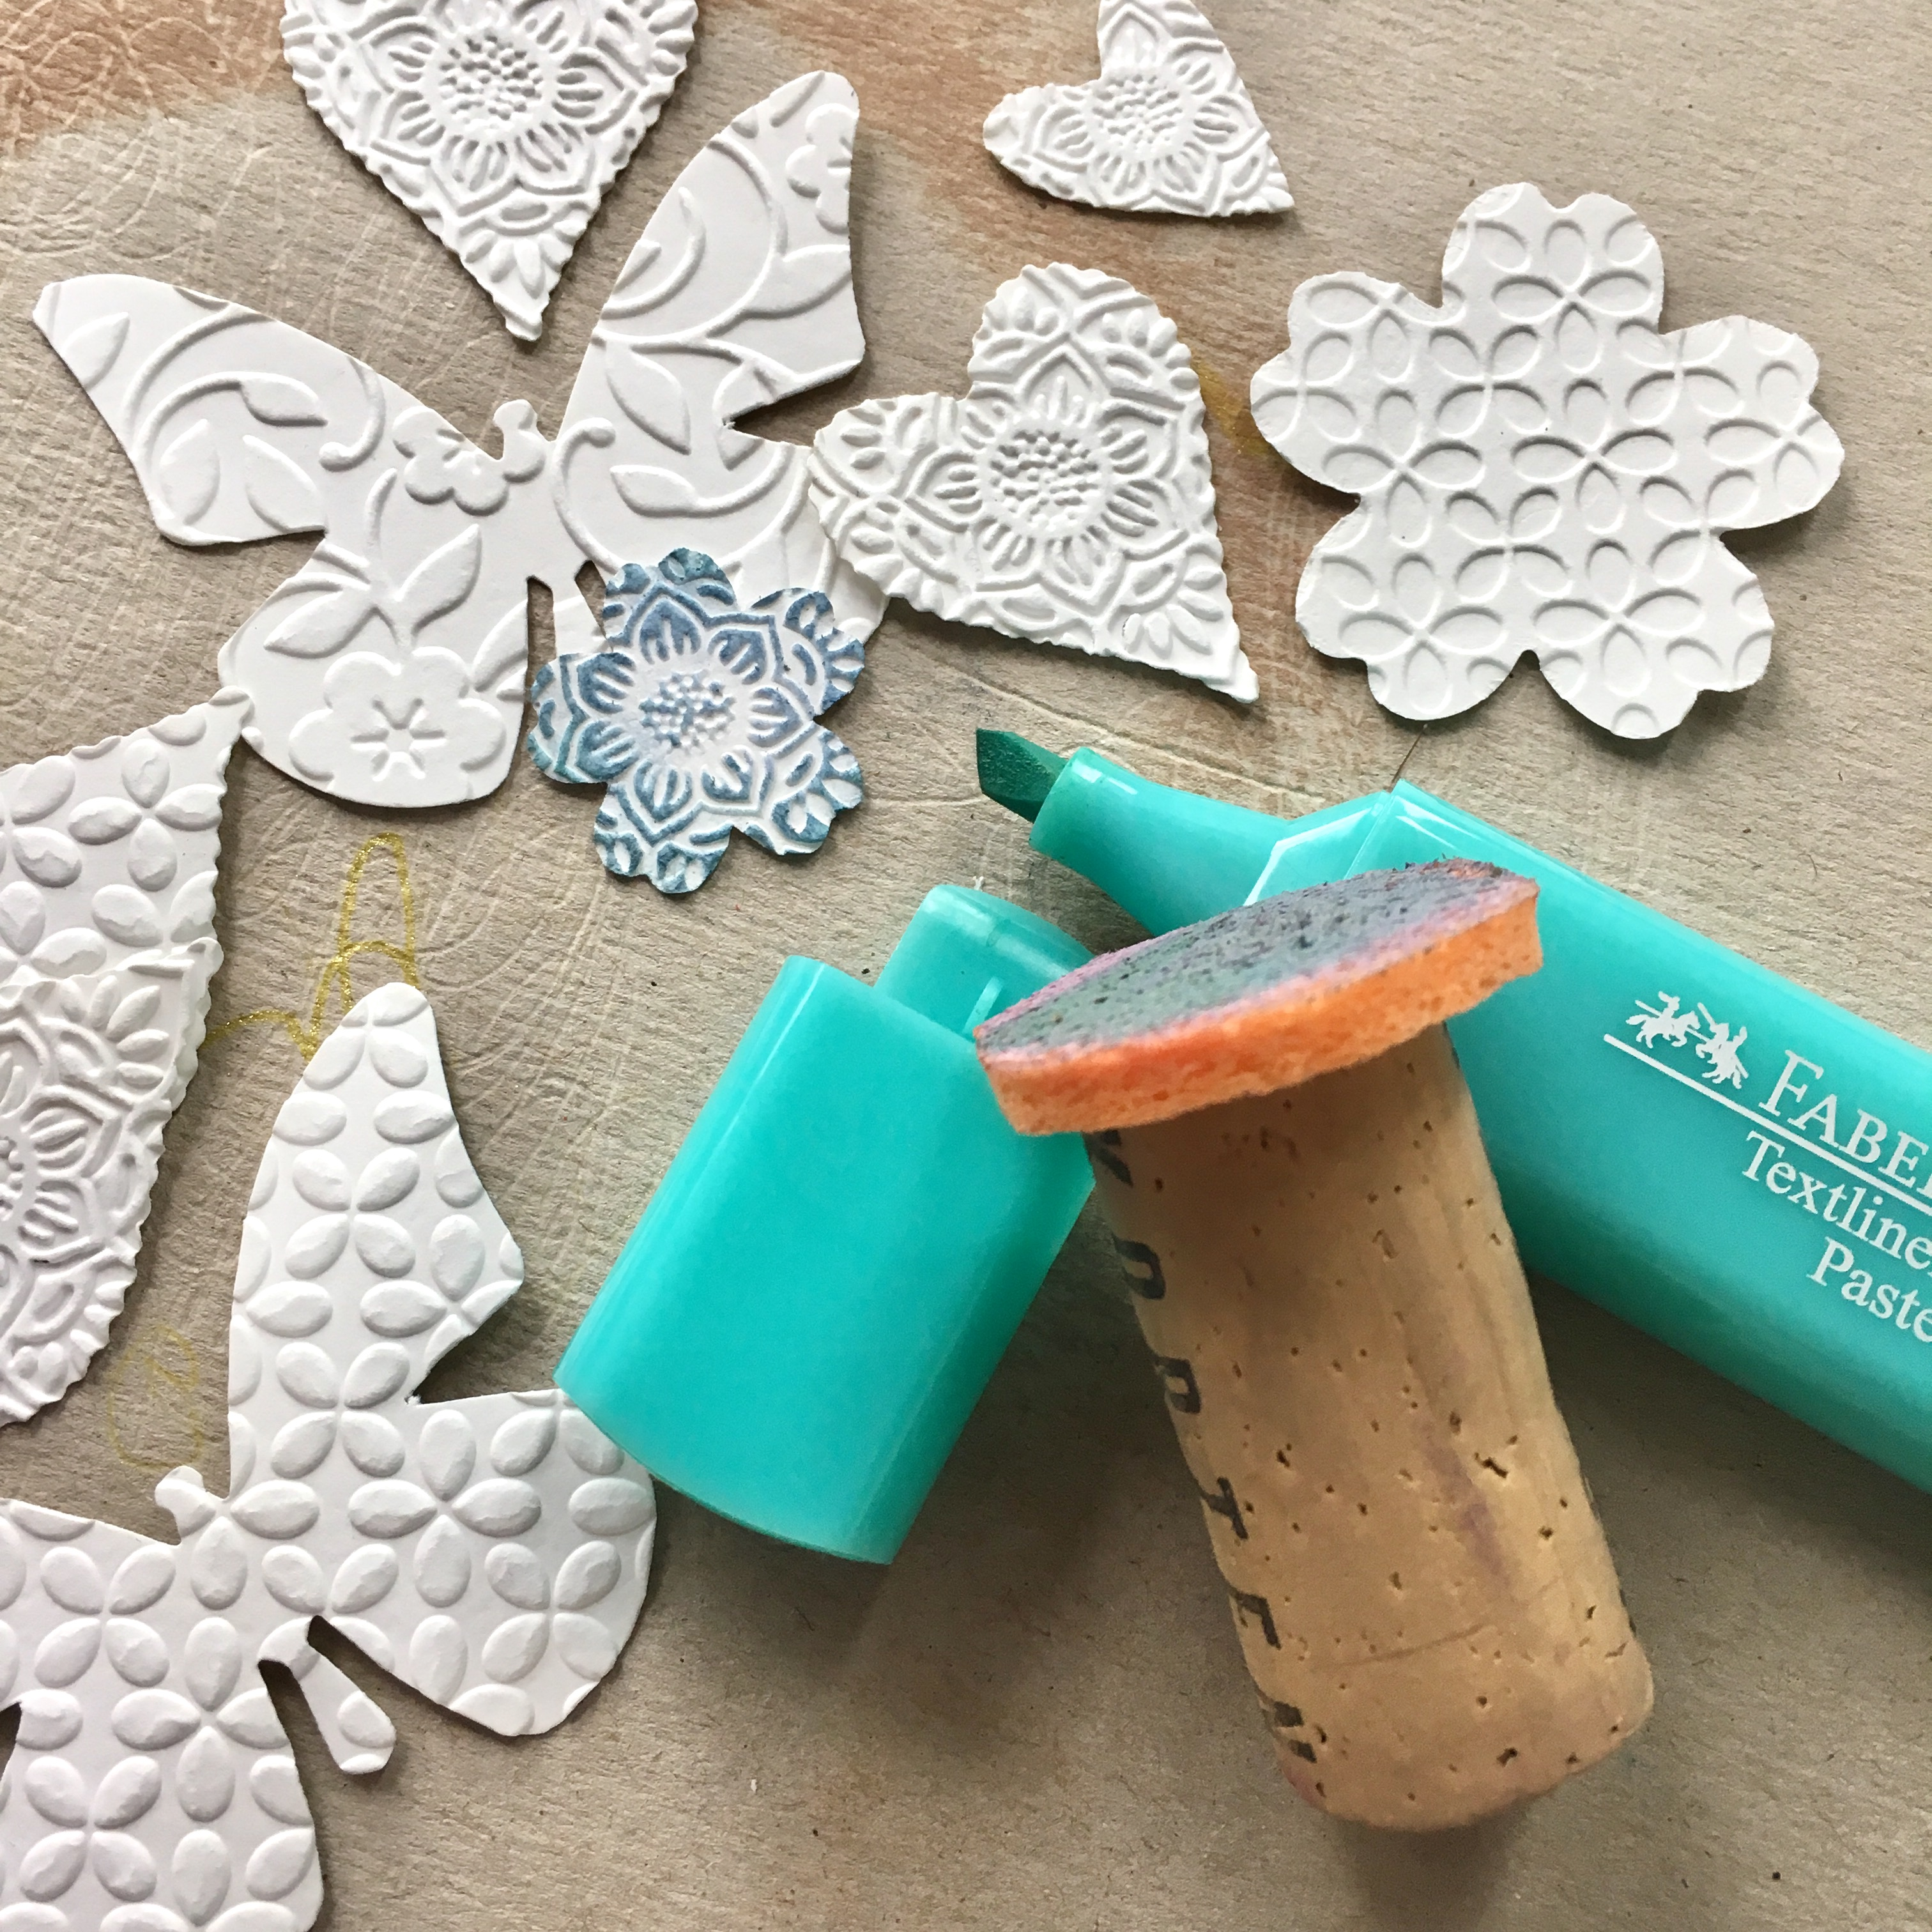 embossed paper butterflies, flowers and hearts, turquoise textliner and blending tool from cork and sponge